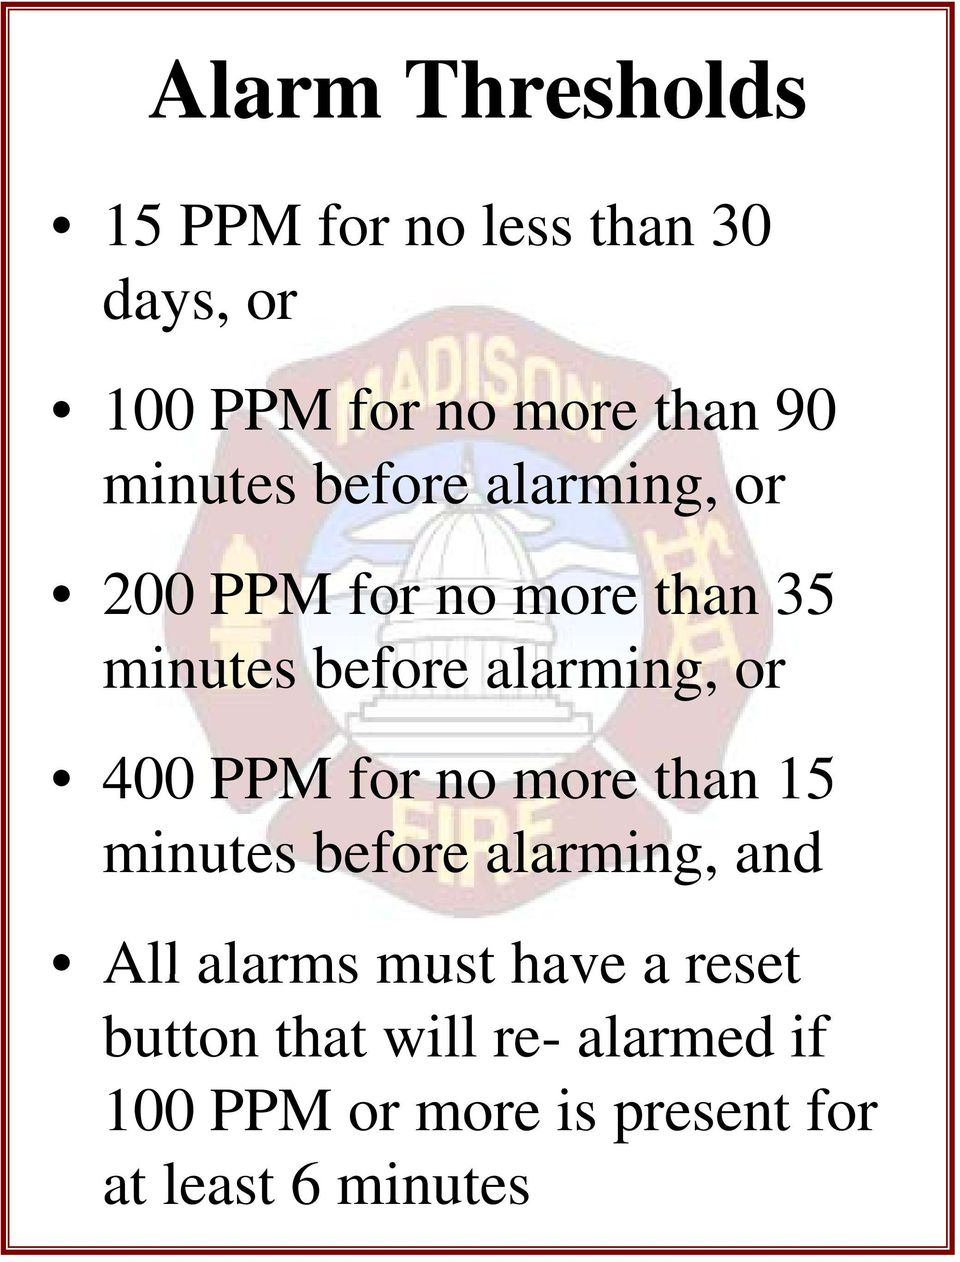 more than 15 minutes before alarming, and All alarms must have a reset All alarms must